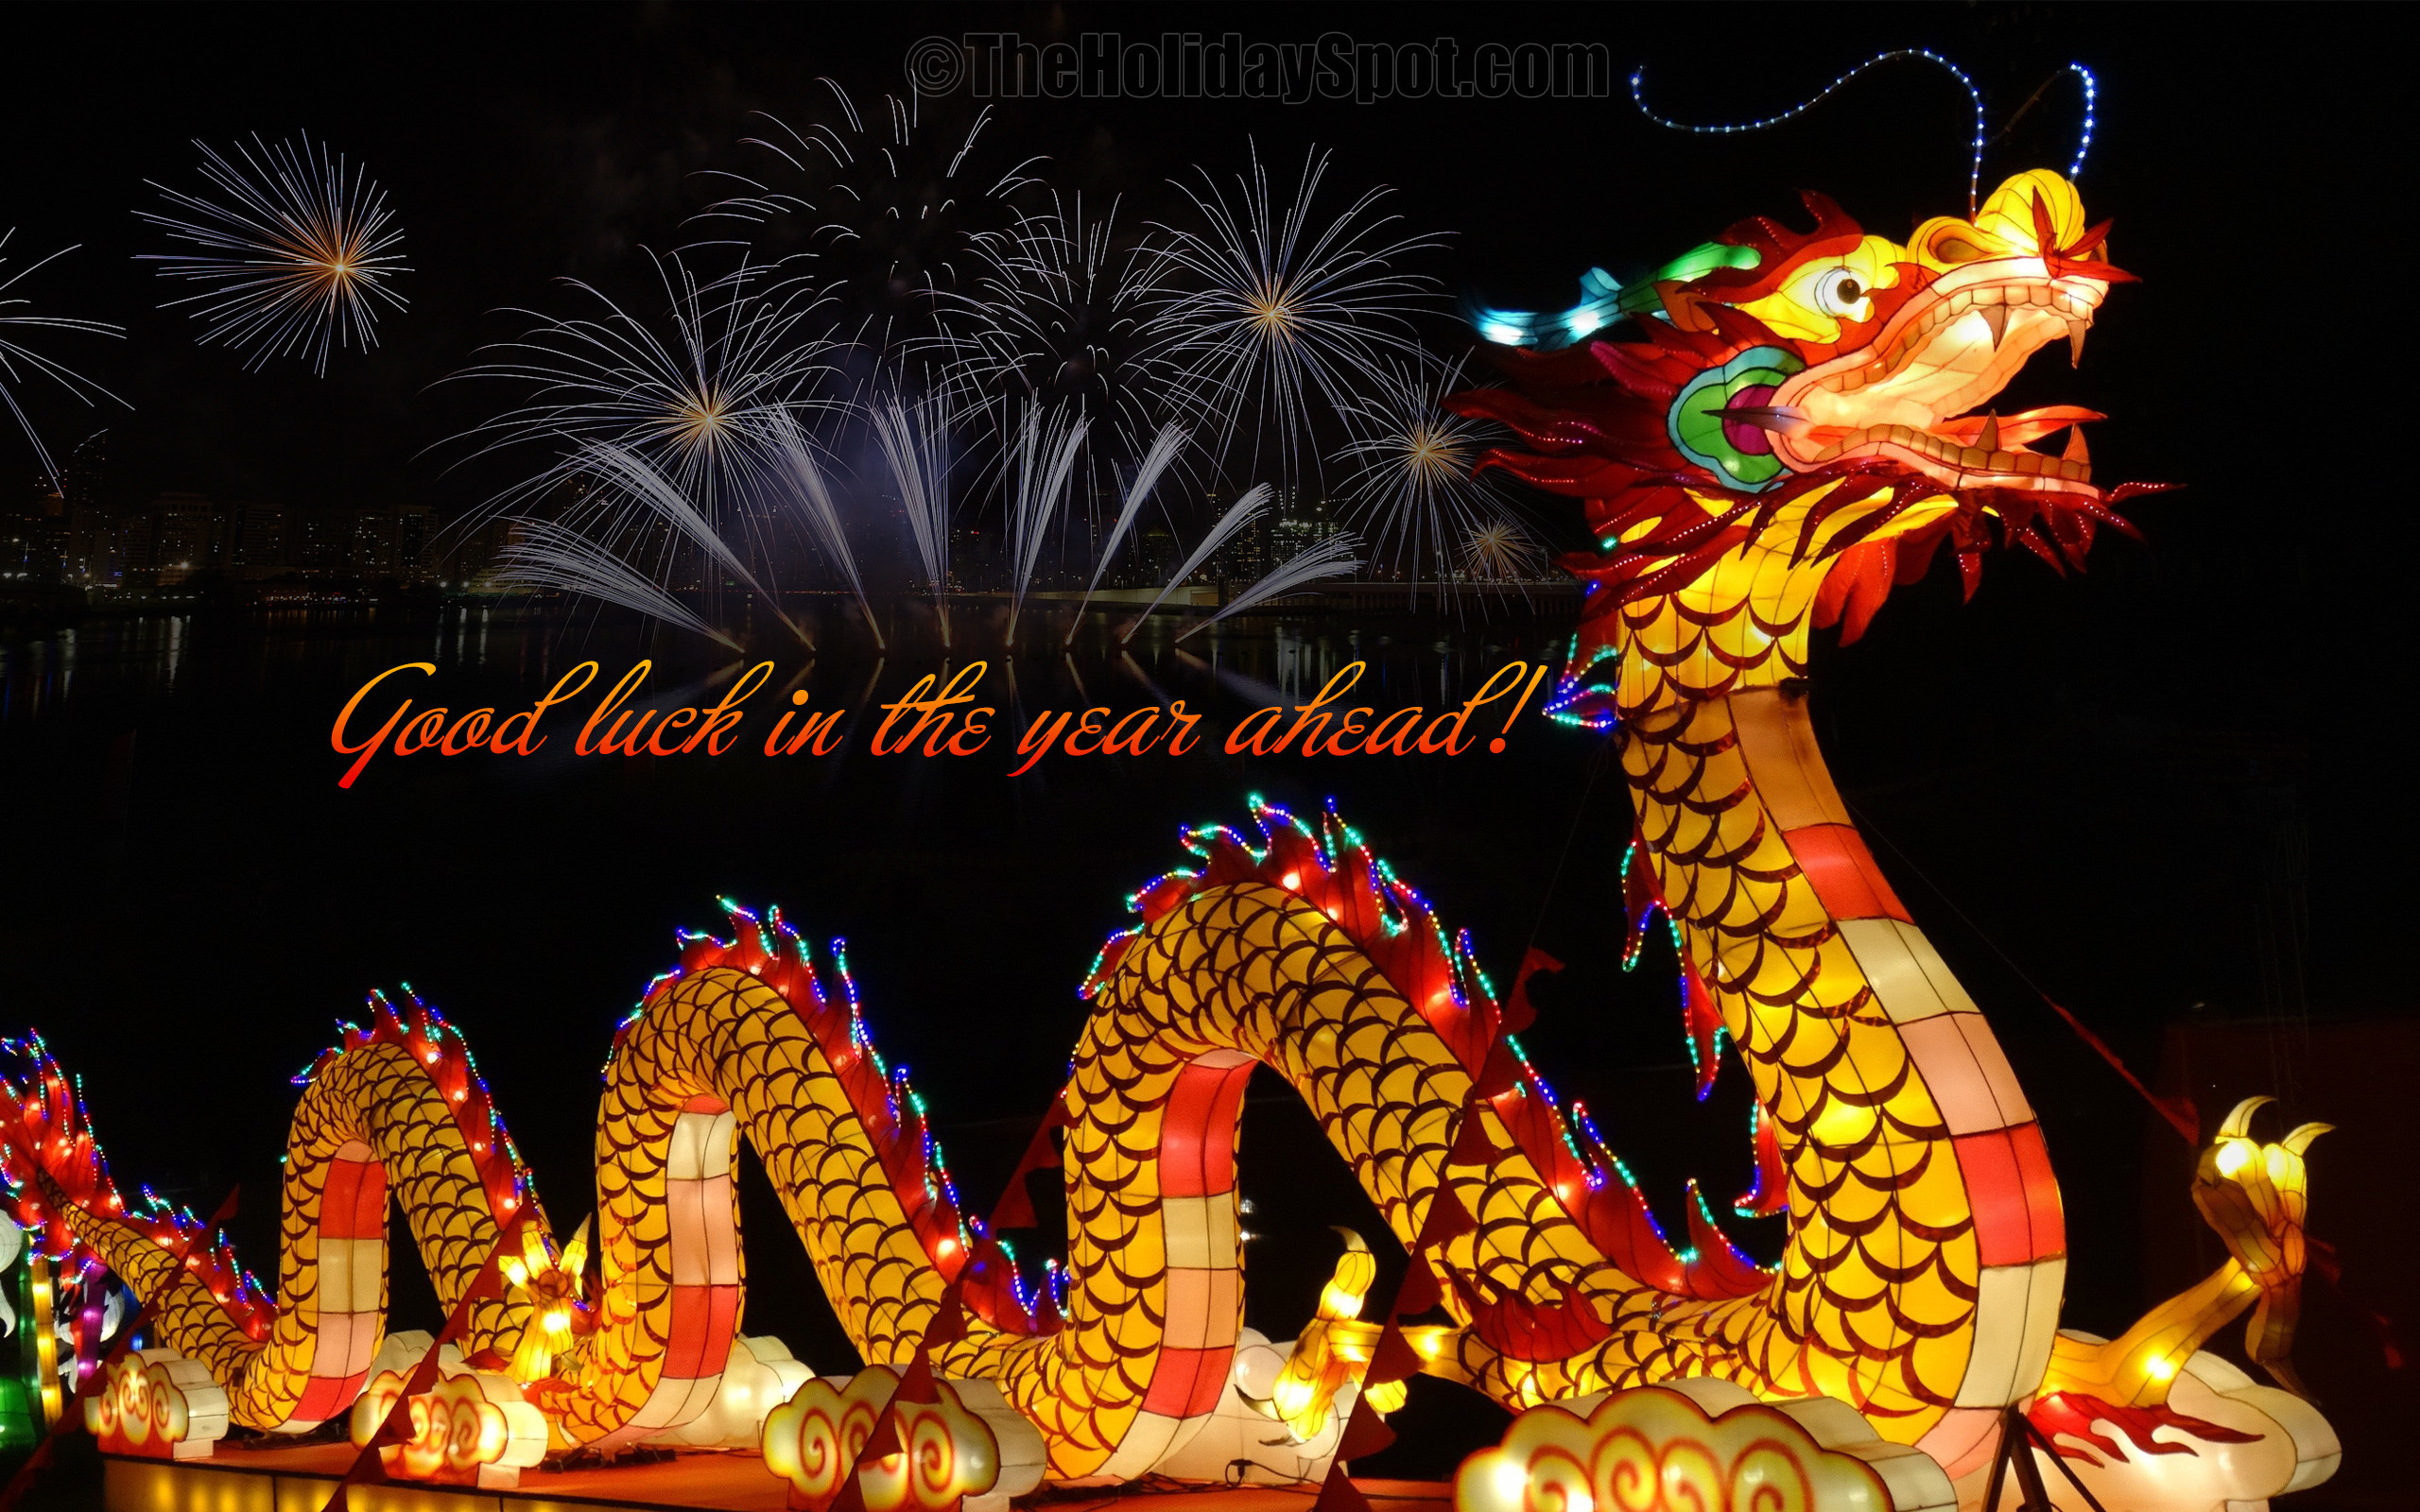 2560x1600 Chinese New Year Wallpaper with fireworks and dragon